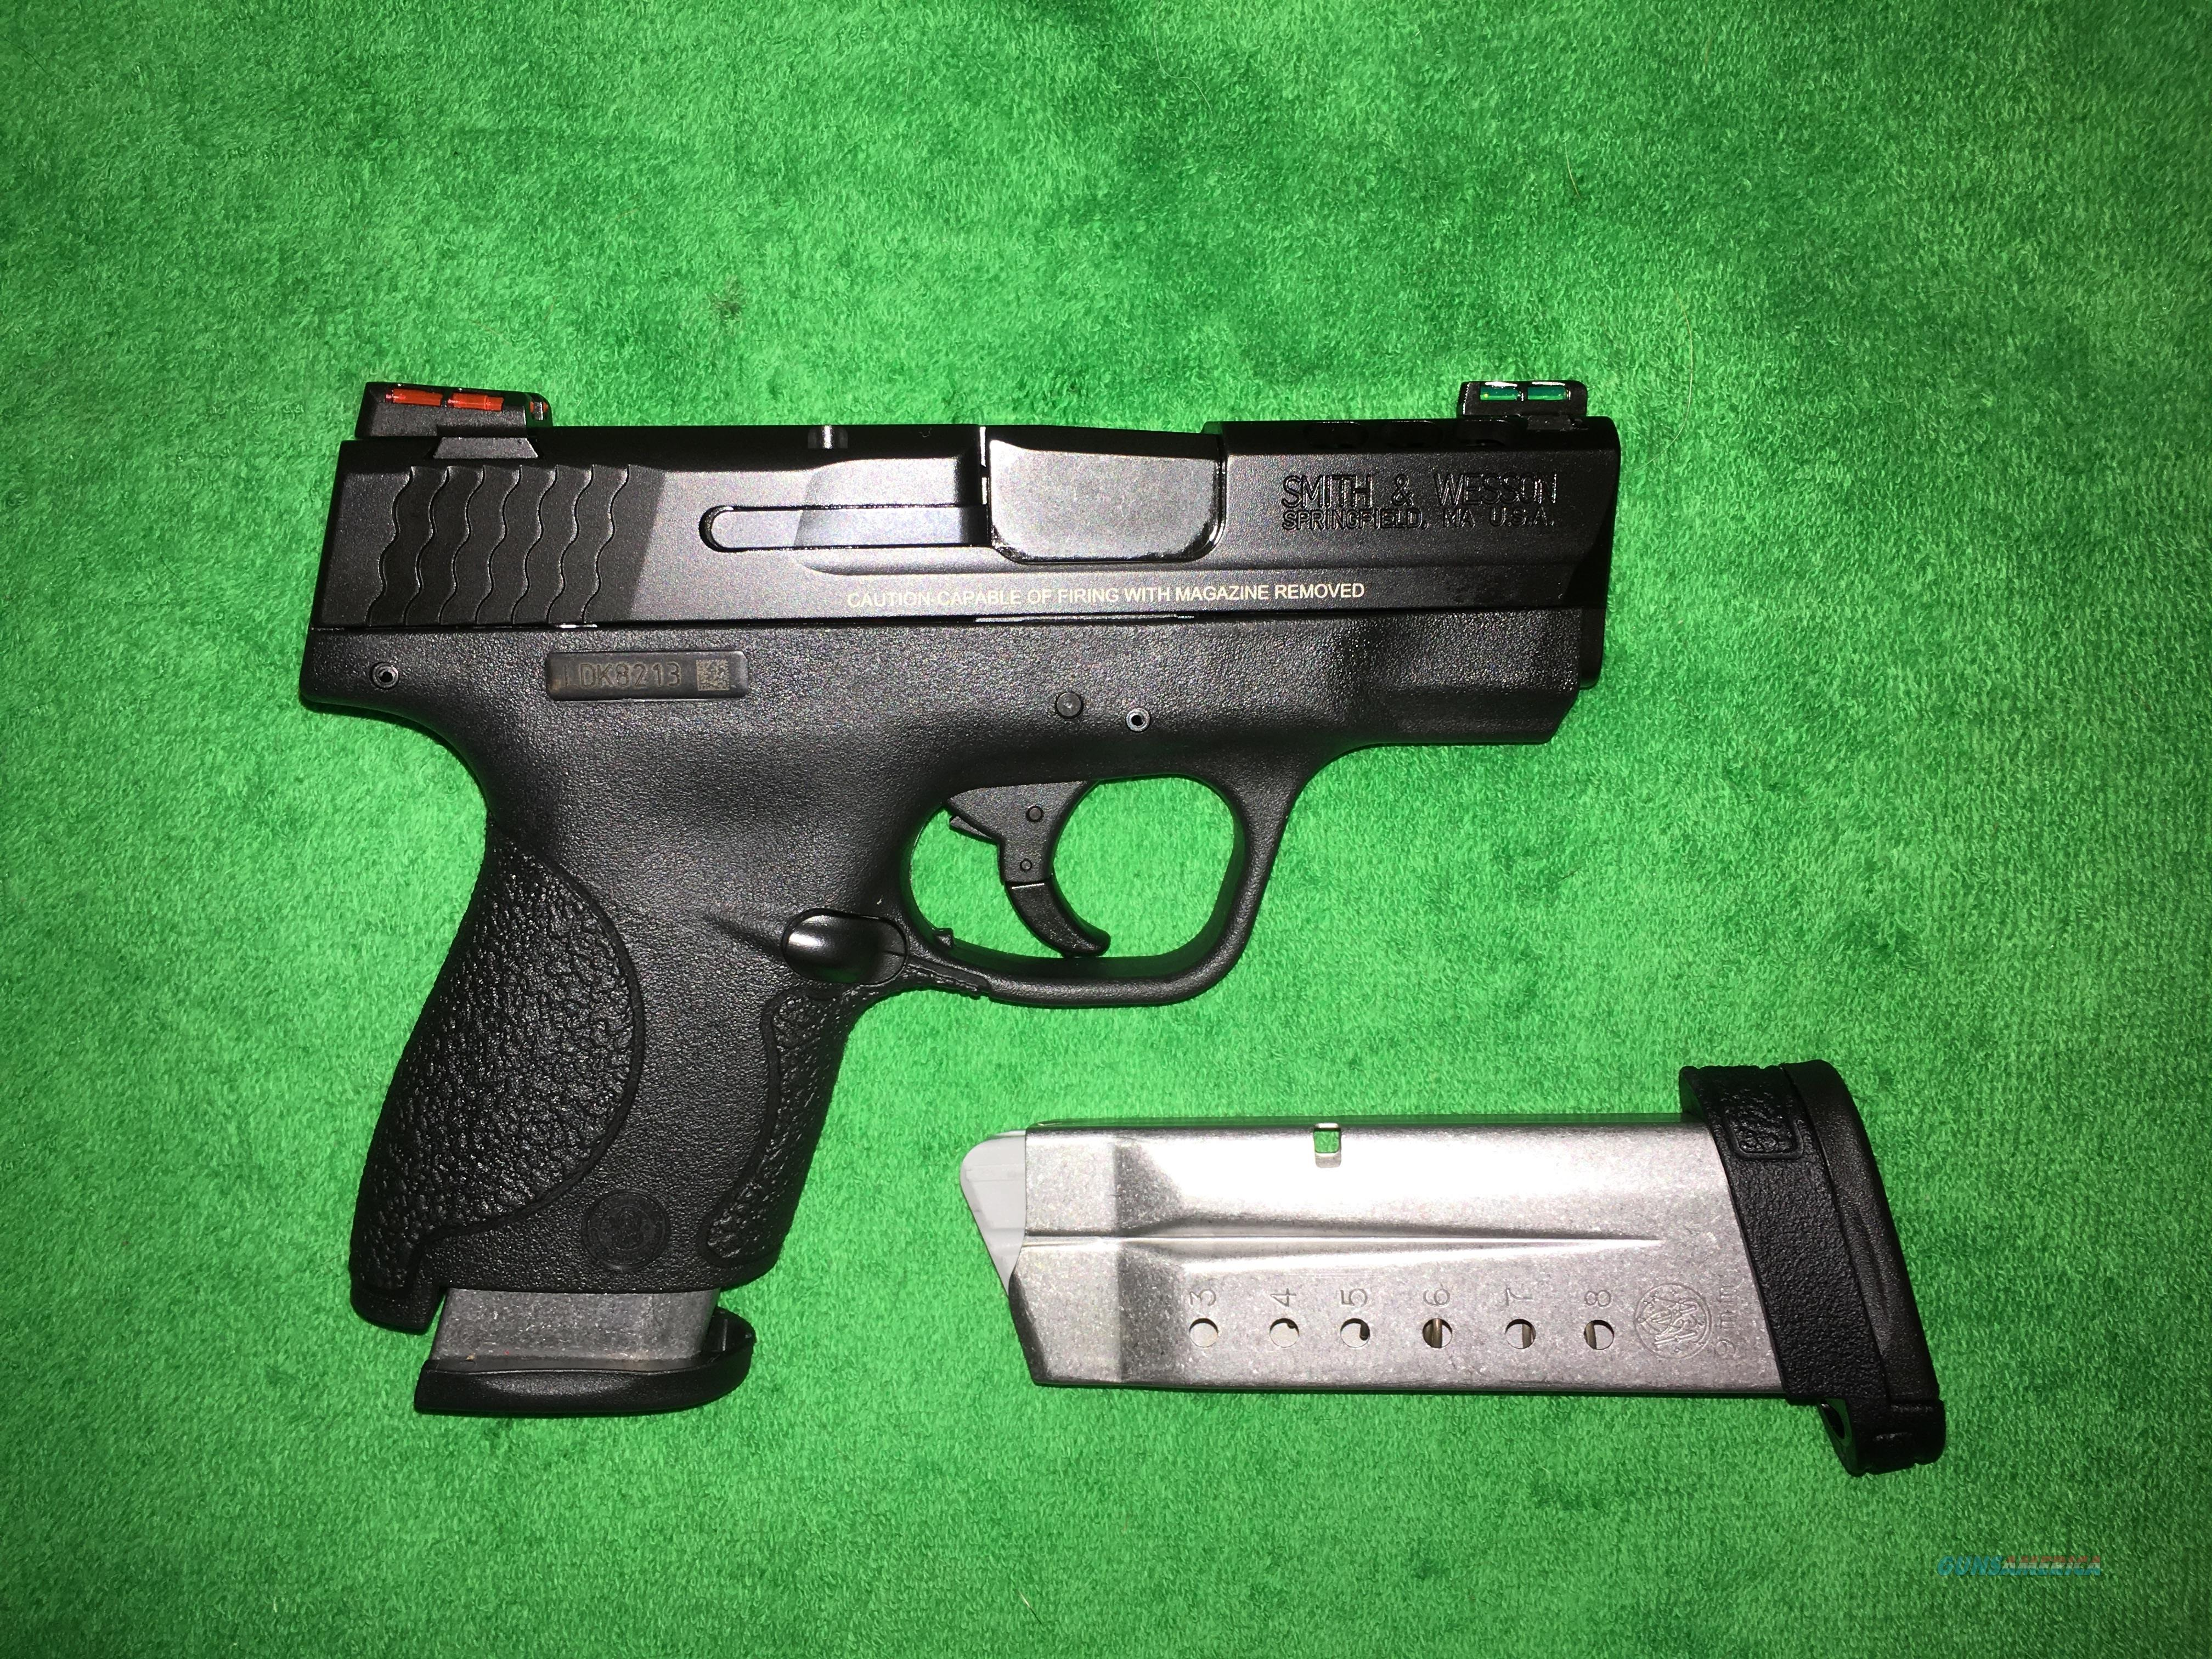 Smith & Wesson M&P 9 Shield Performance Center, Ported 9mm  Guns > Pistols > Smith & Wesson Pistols - Autos > Shield